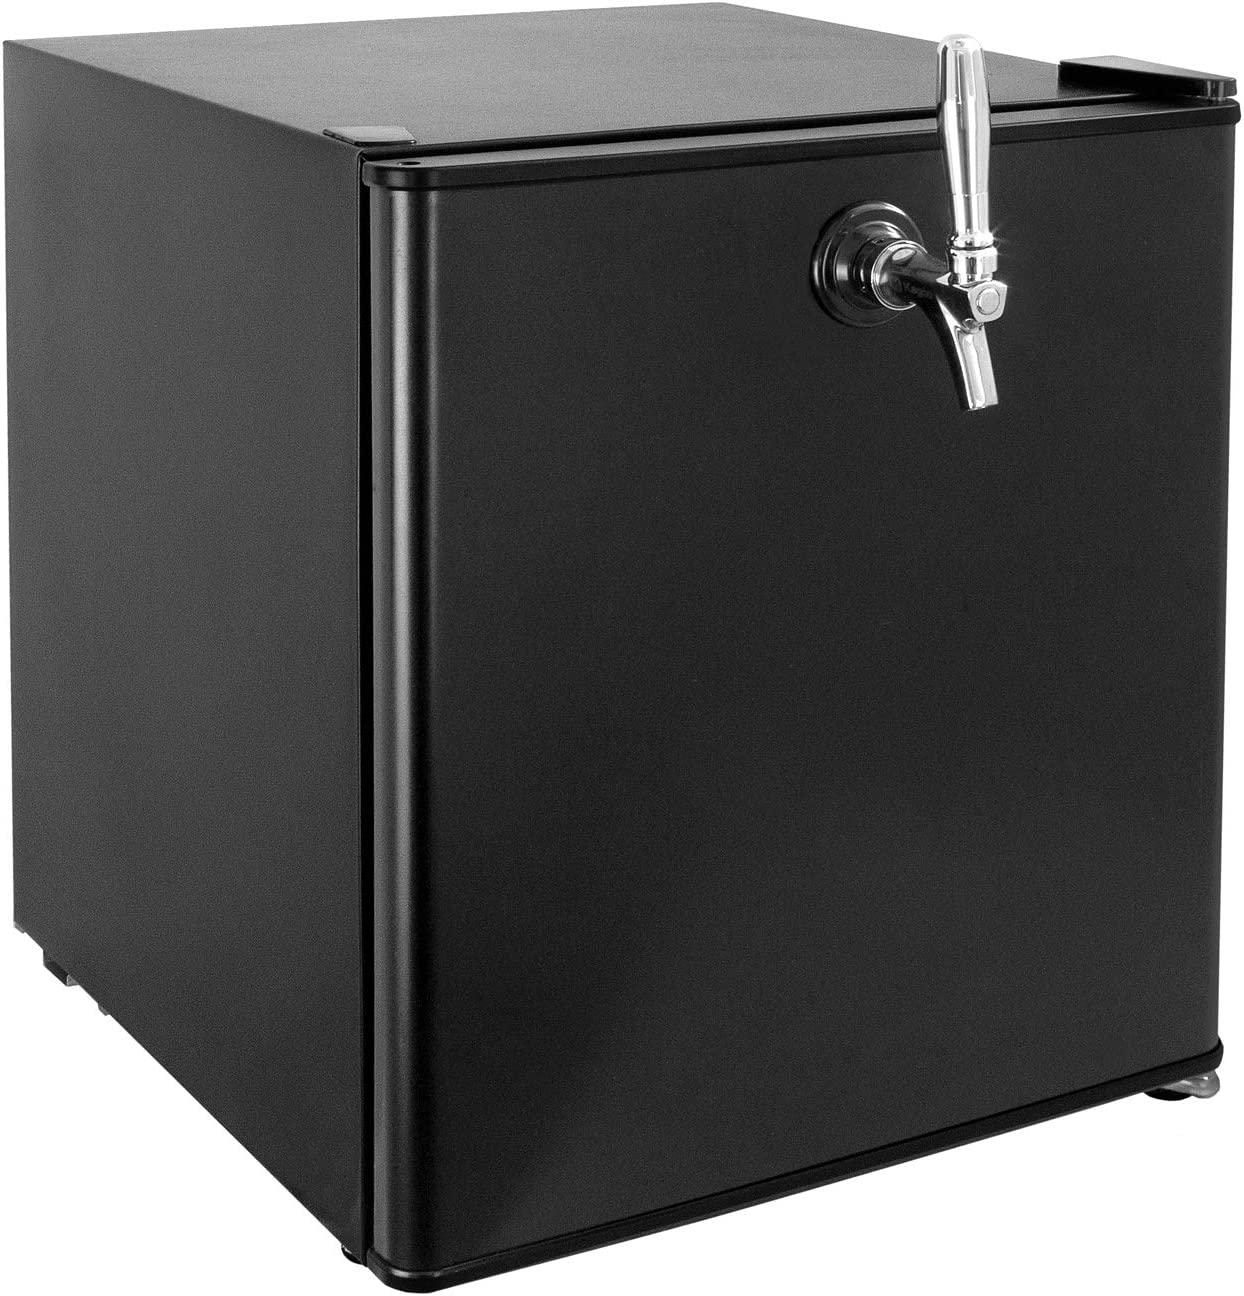 71PfiJZ9y1L. AC SL1500 The Best Beer Kegerator Refrigerator in 2021 (Review)